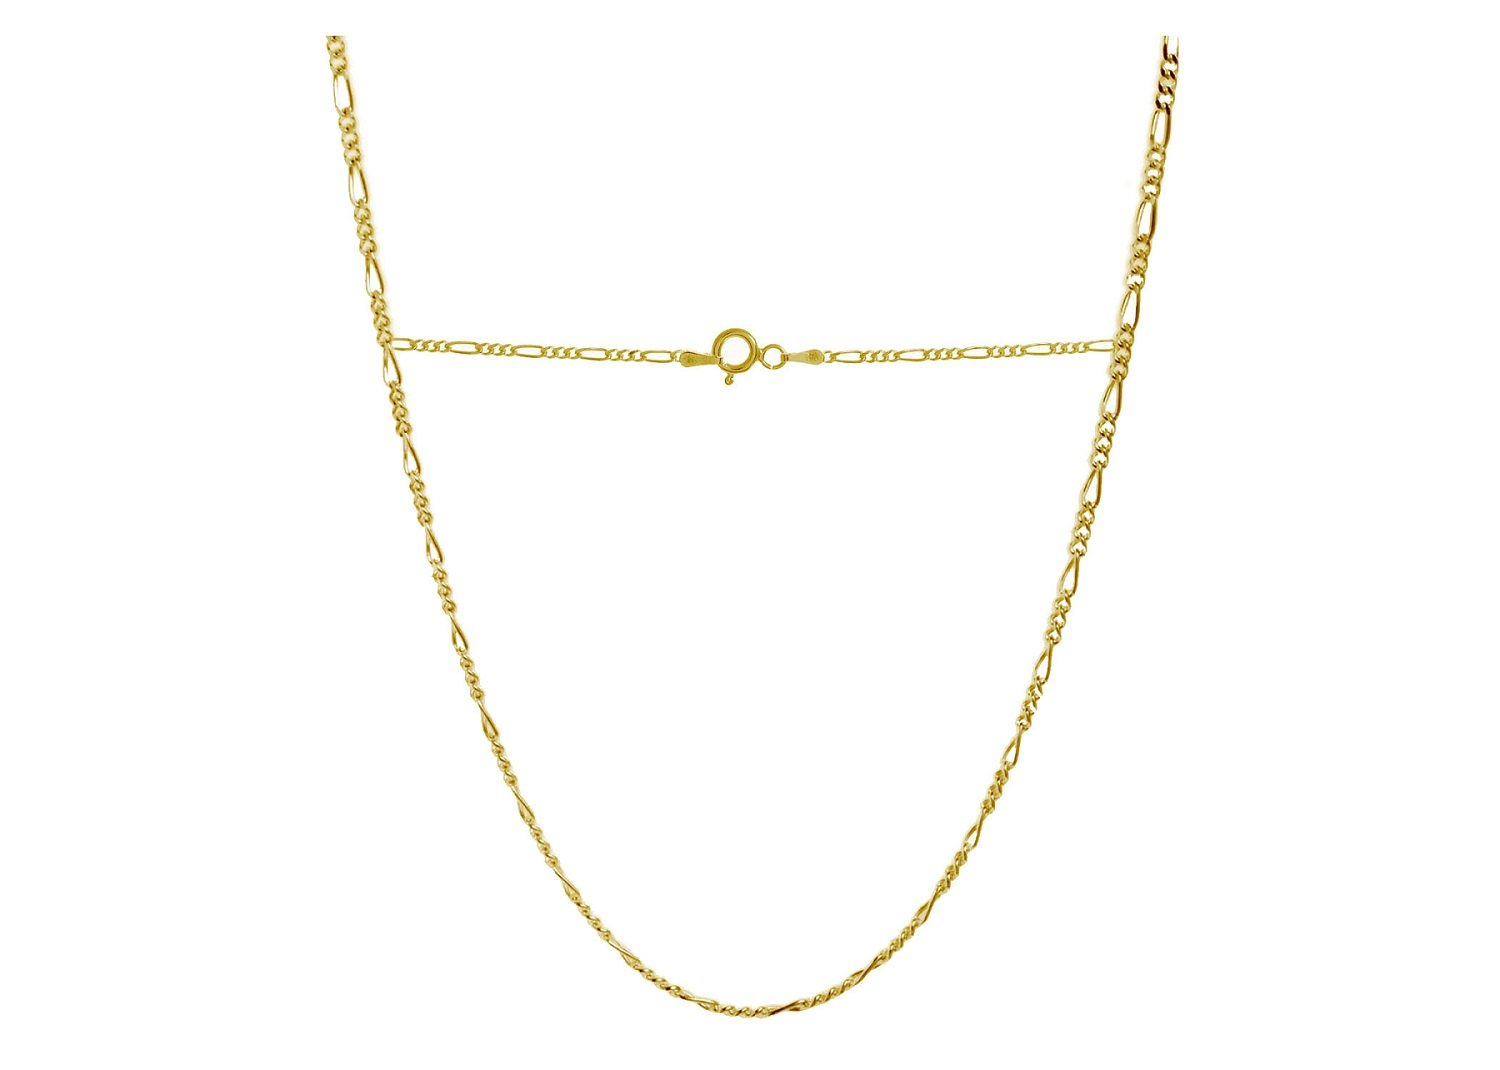 18 Karat Solid Yellow Gold Figaro Link Chain Necklace - 3+1 Link - Made In Italy- 26''